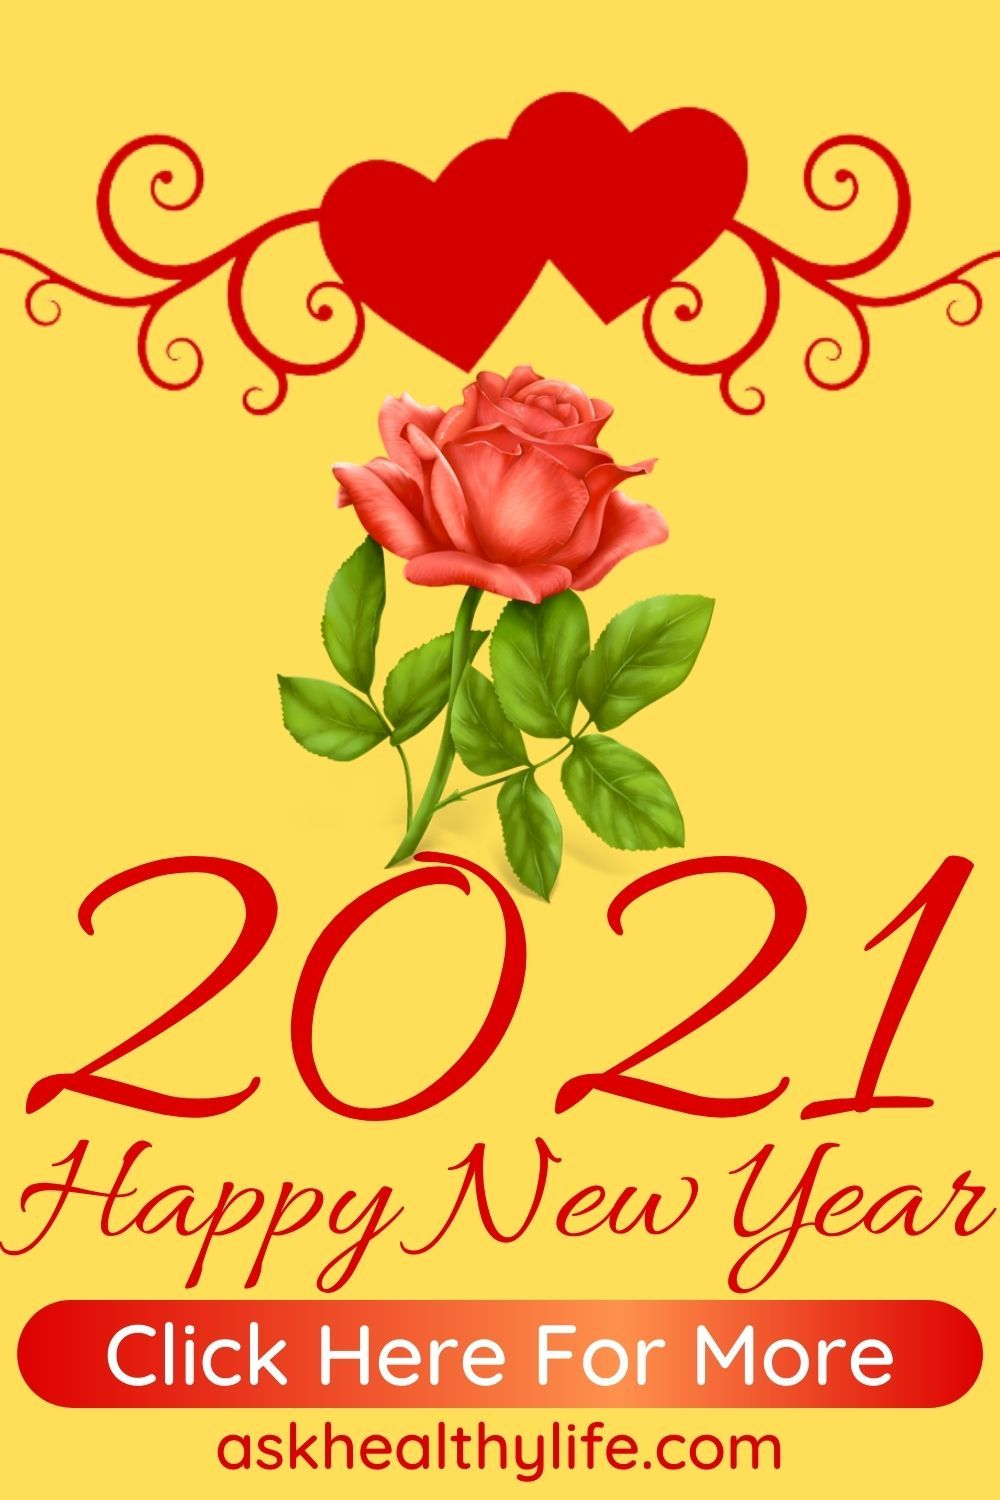 Happy New Year 2021 Images Wallpapers Happy New Year Wallpaper Happy New Year 2021 Wallpapers Happy New Year Images